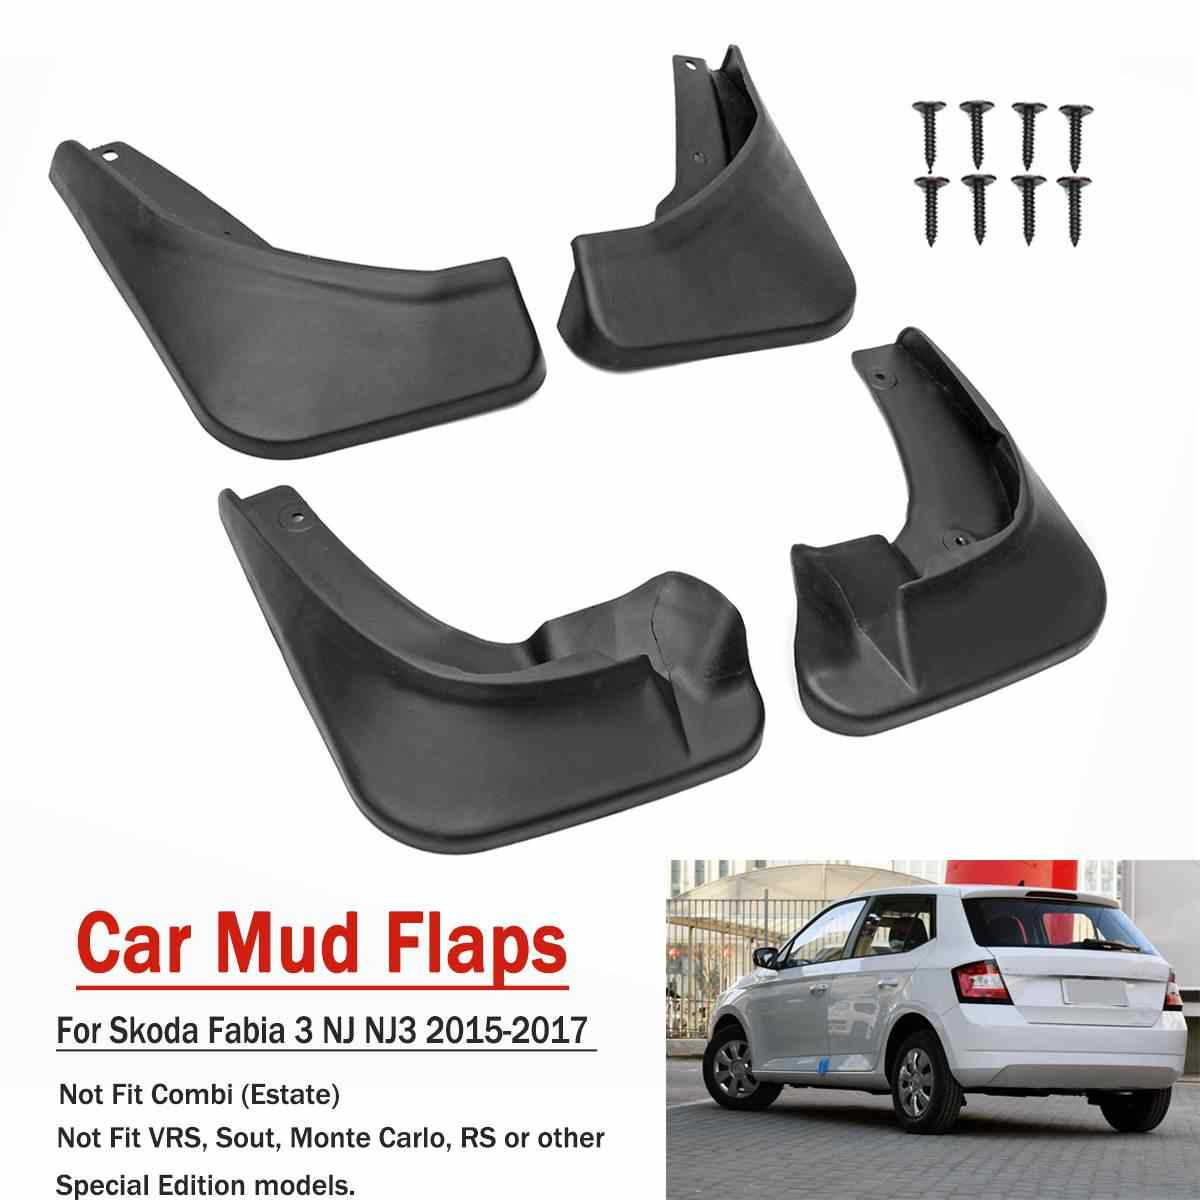 Car Front Rear Mud Flaps for Skoda Fabia 3 NJ NJ3 2015 2016 2017 Mudguards for Fender Splash Guards Accessories